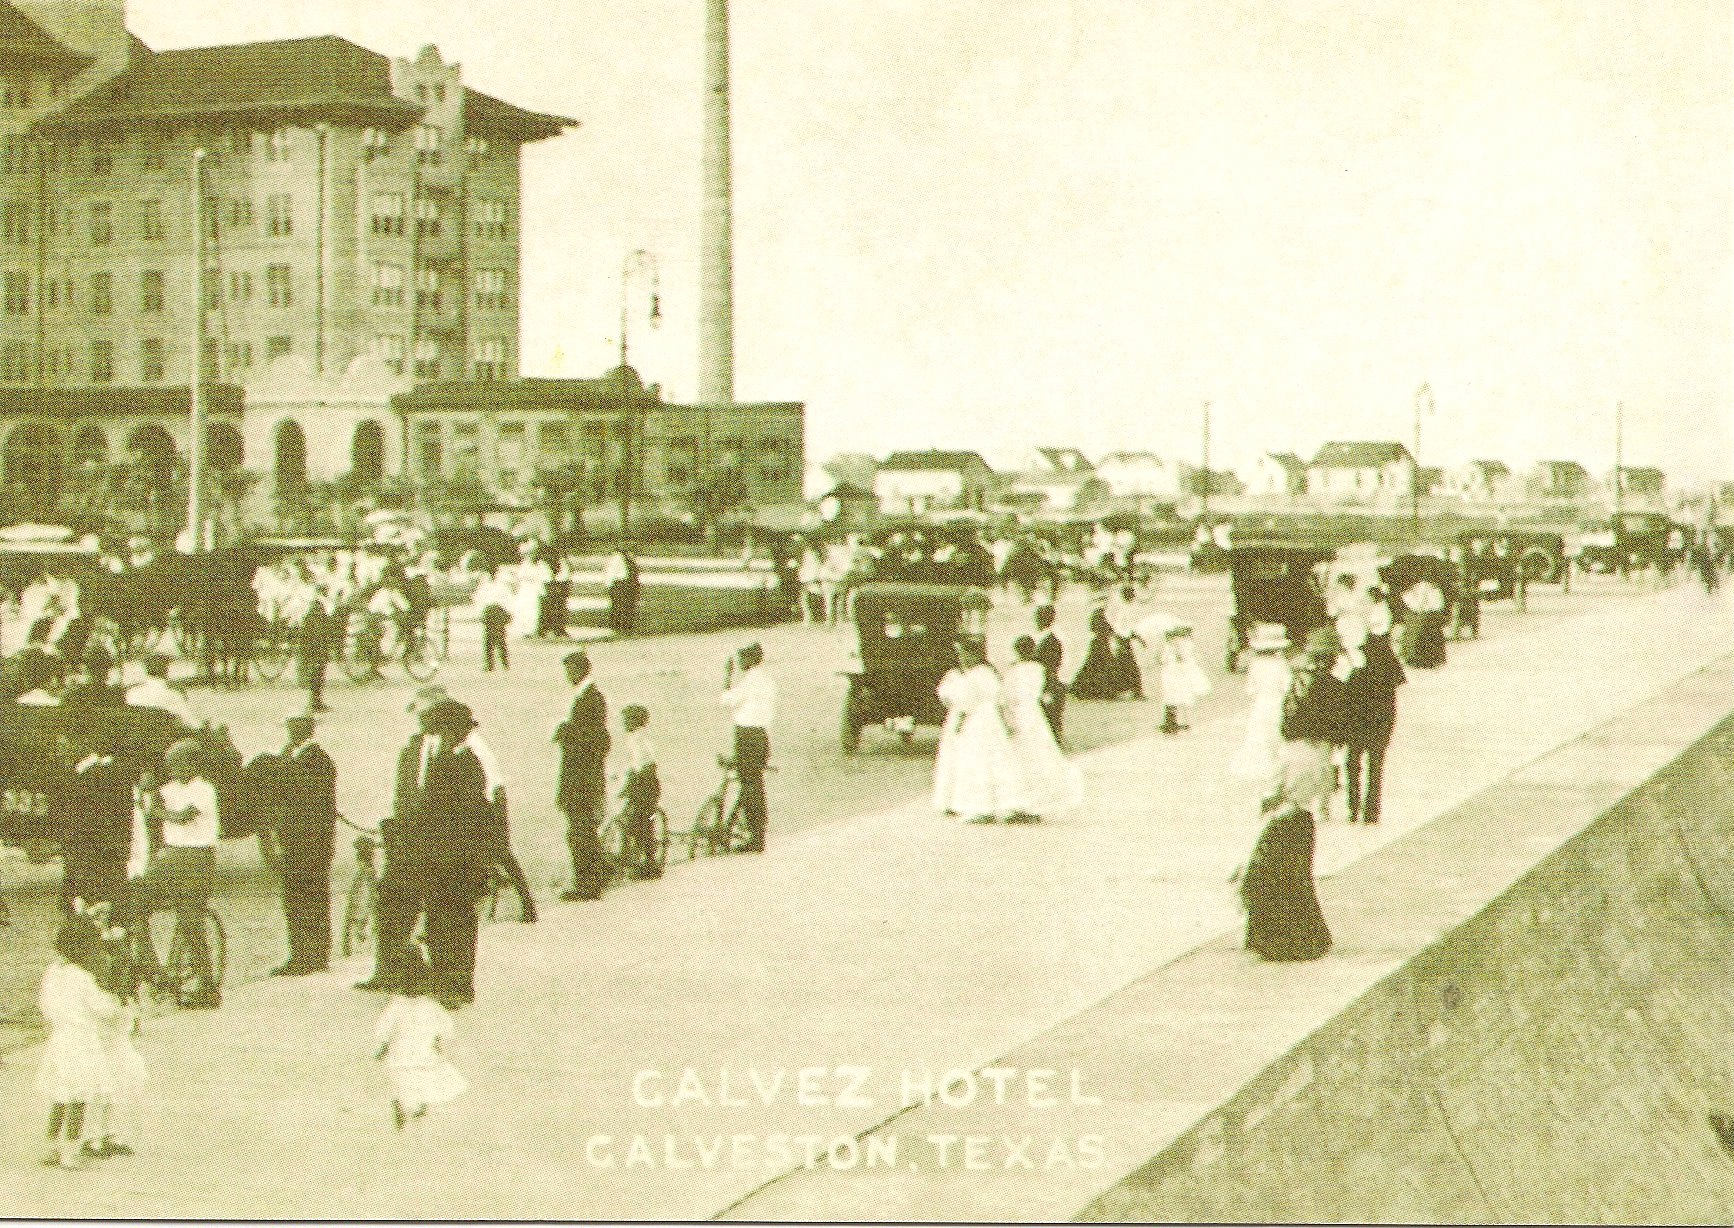 Galvez Hotel: Reproduction of Vintage Postcard.